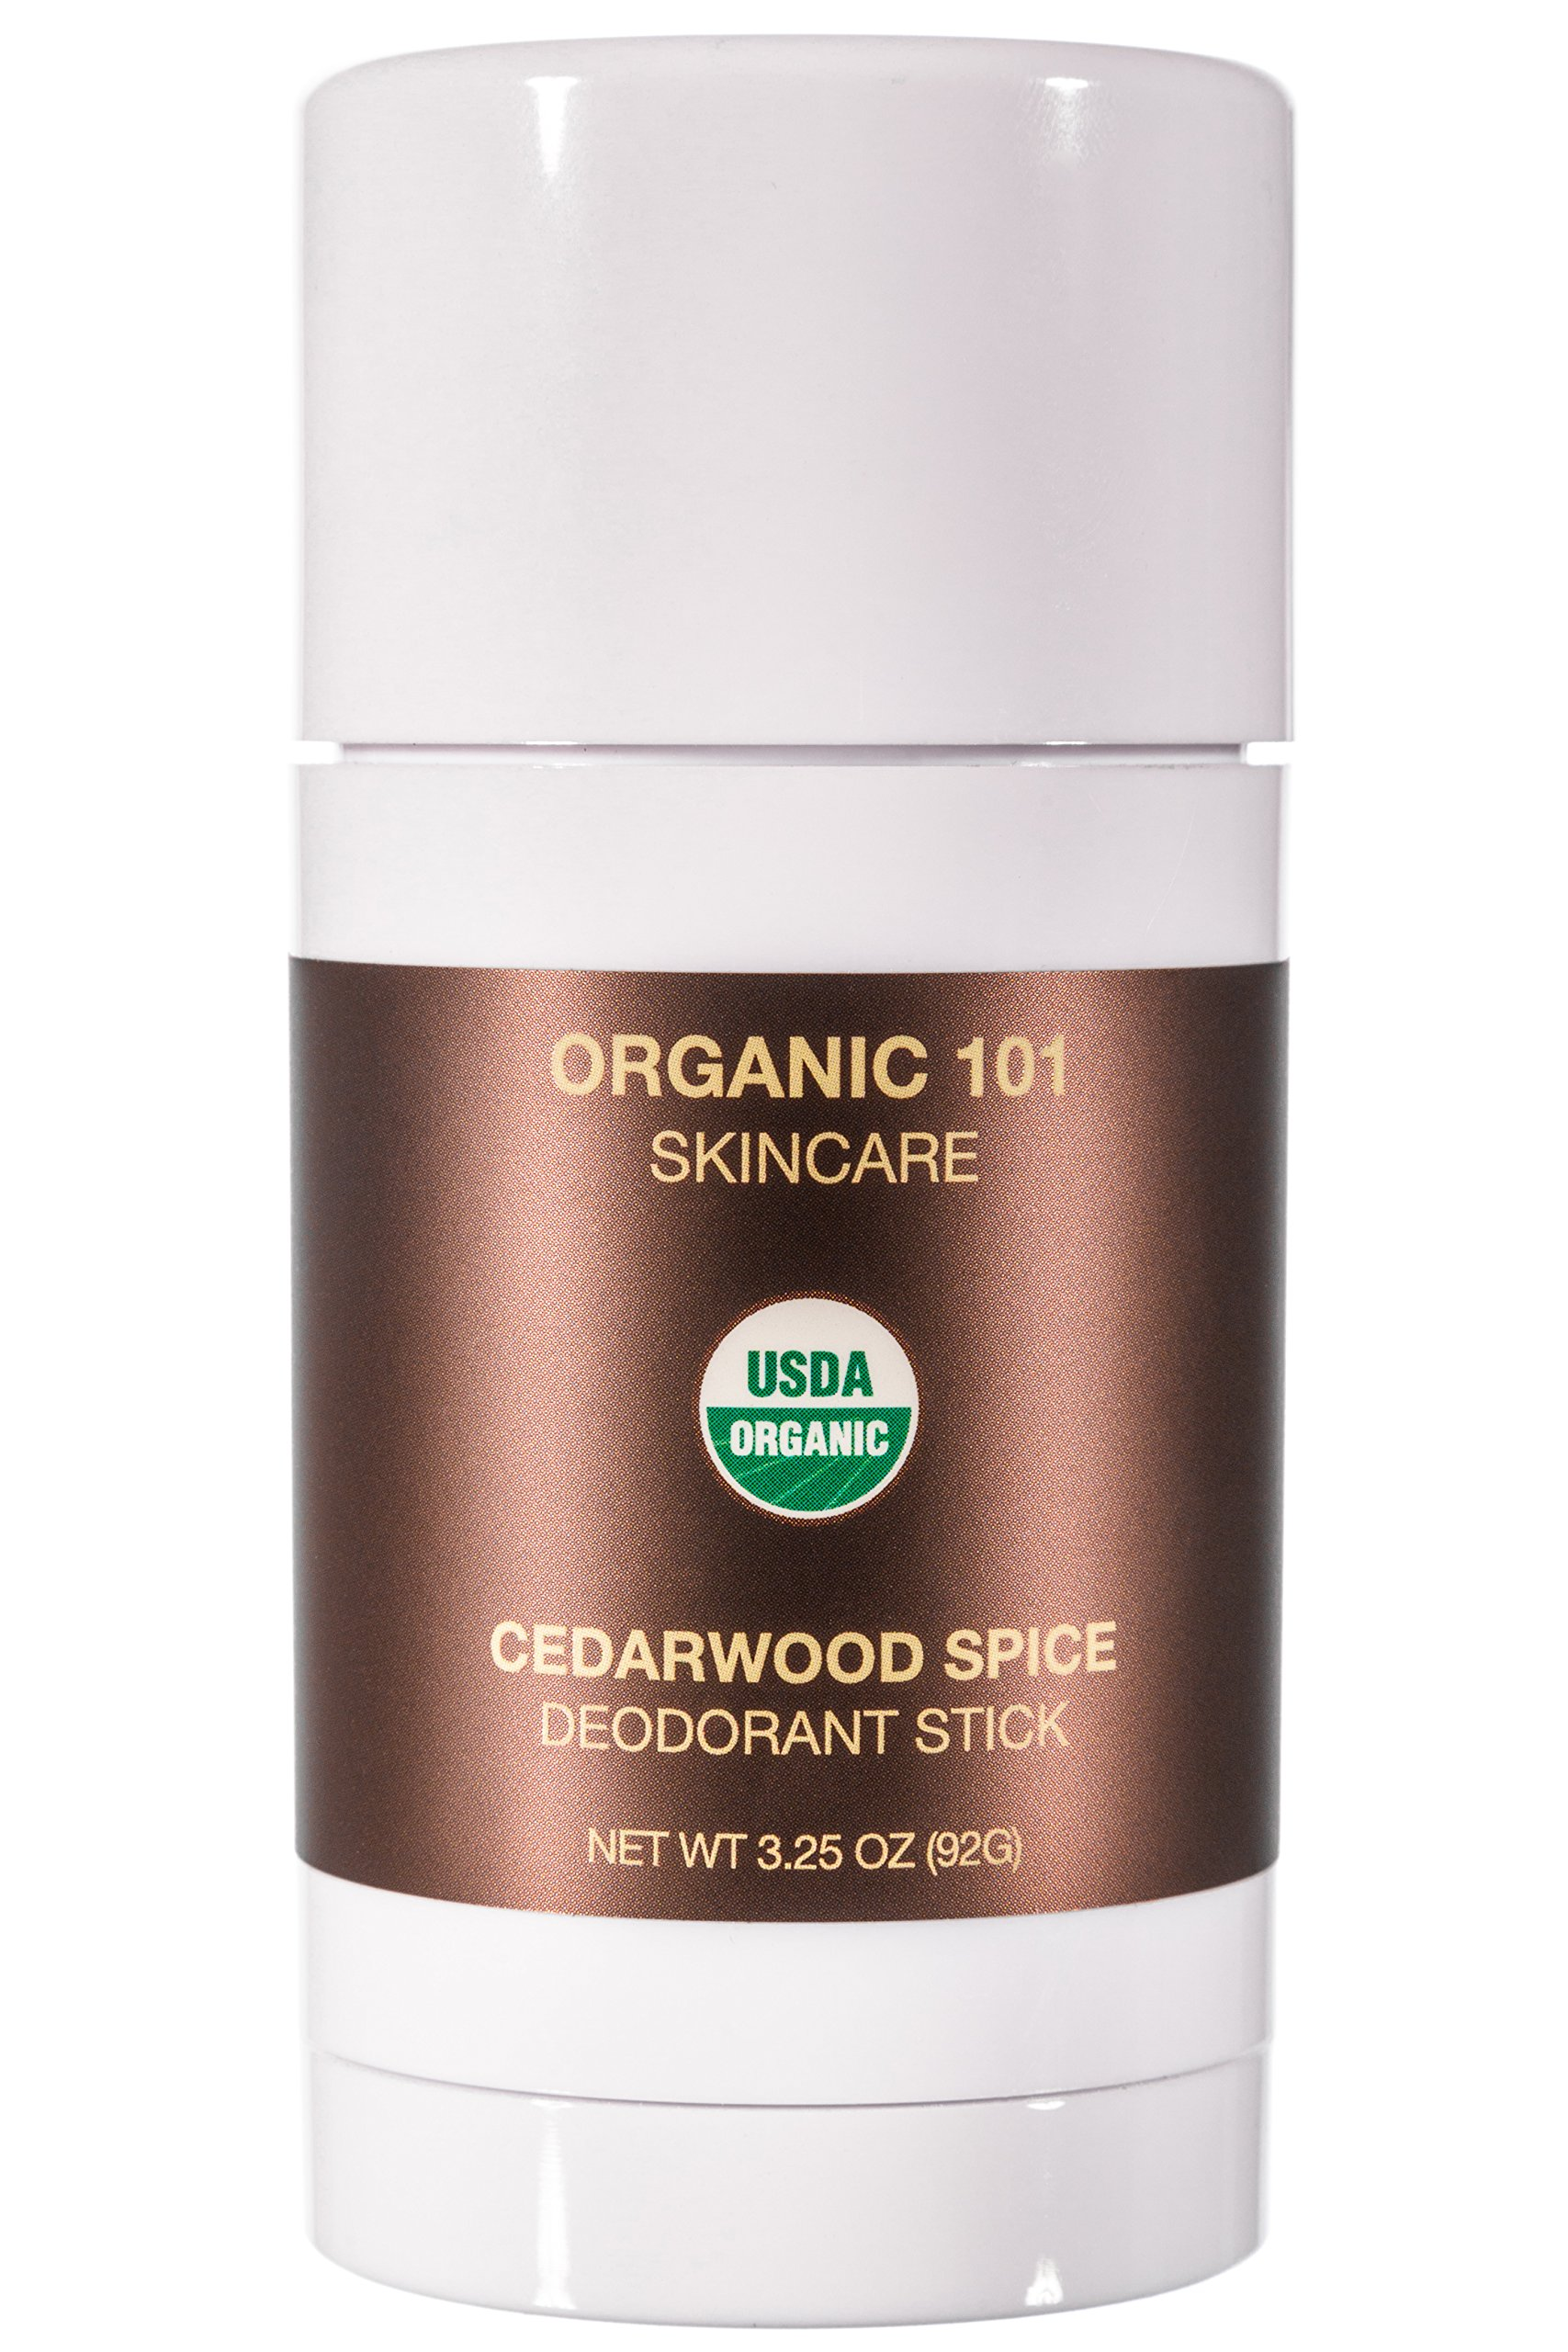 ORGANIC 101 Cedarwood Spice USDA Certified, All Natural, Extra-Strength Deodorant No Aluminum, Parabens, & Other Toxic Chemicals, Stay Clean, Smell Fresh (3.25oz, Satin Bronze)